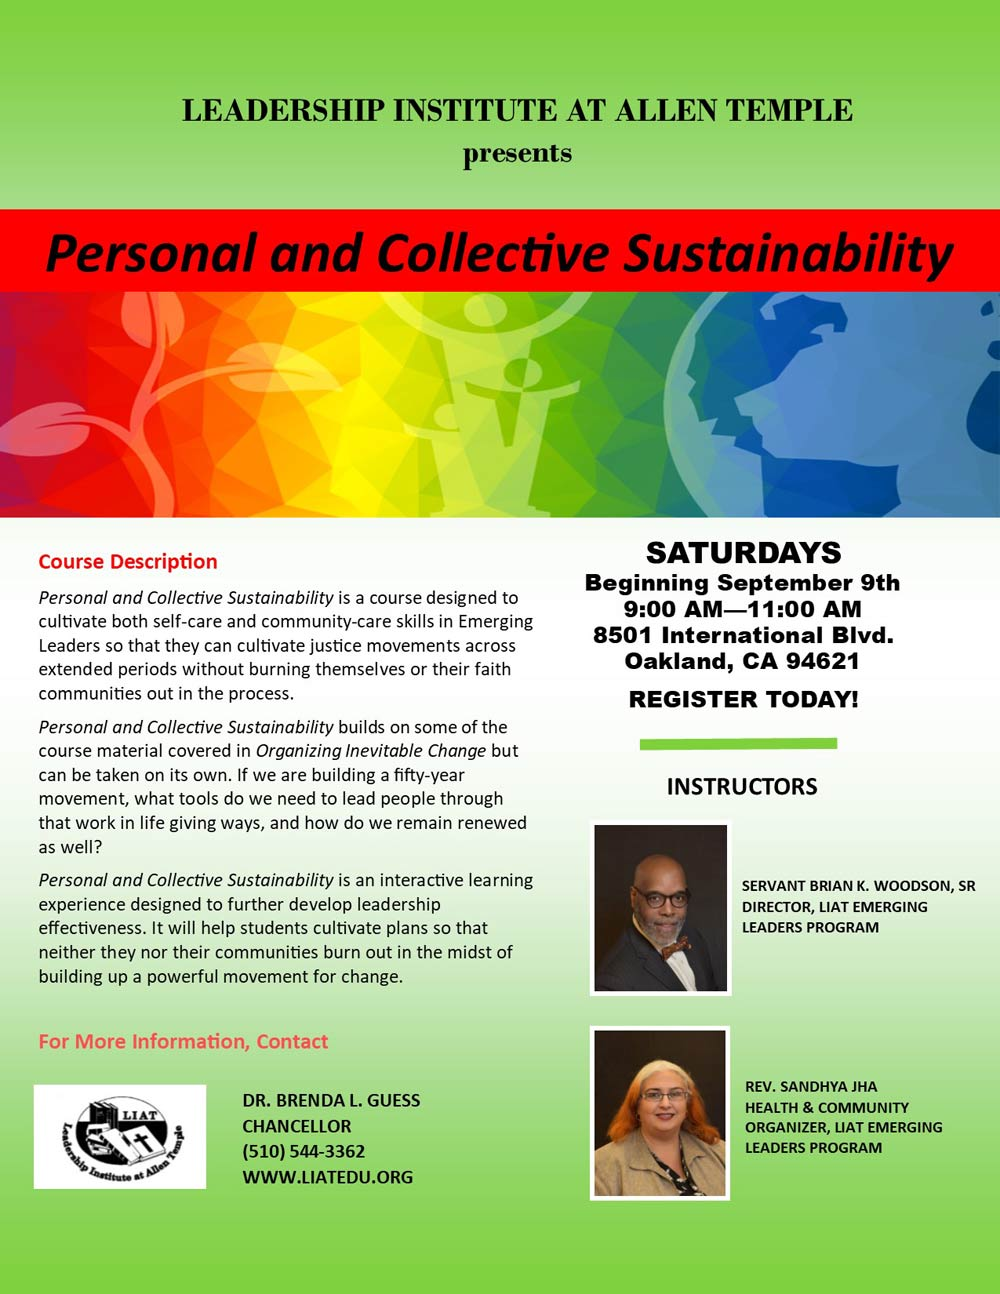 Personal and Collective Sustainability